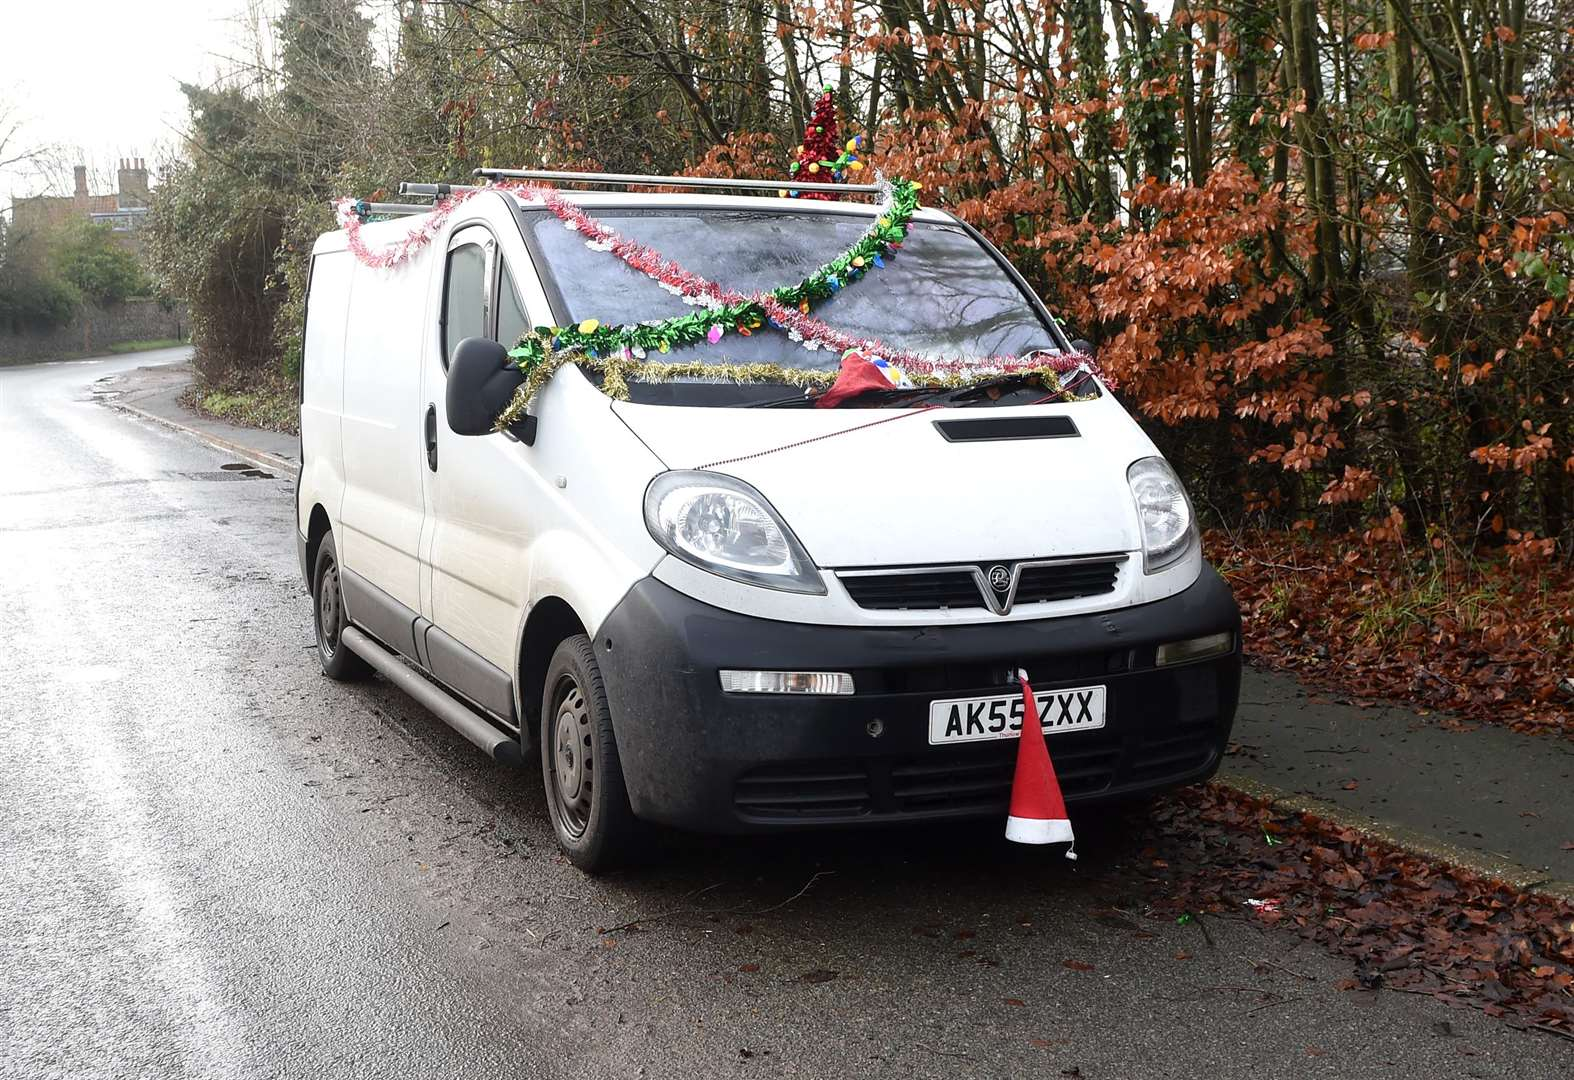 Decorated van sends important message to drivers